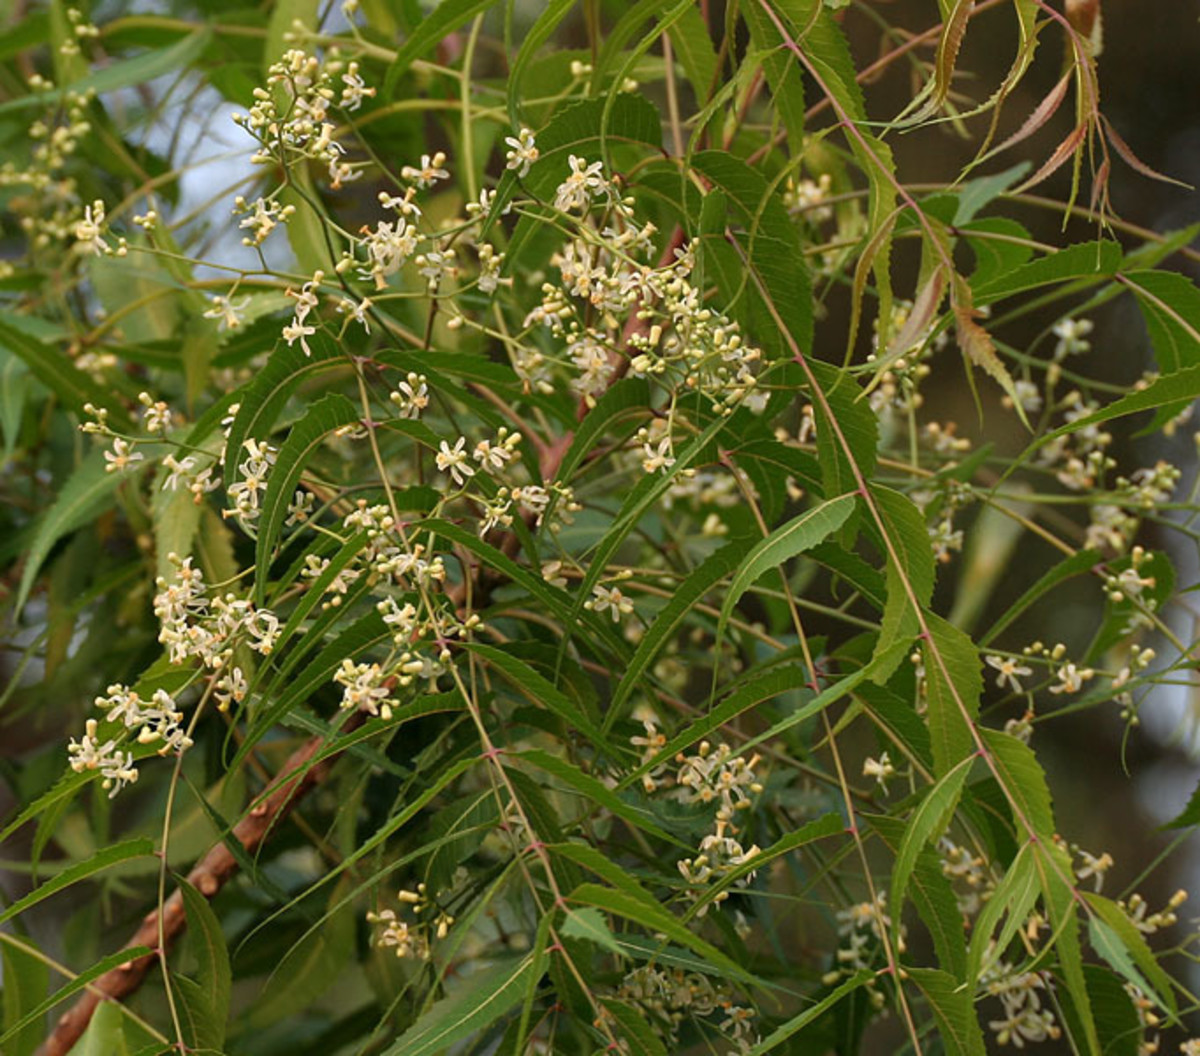 Neem Tree - Flowers